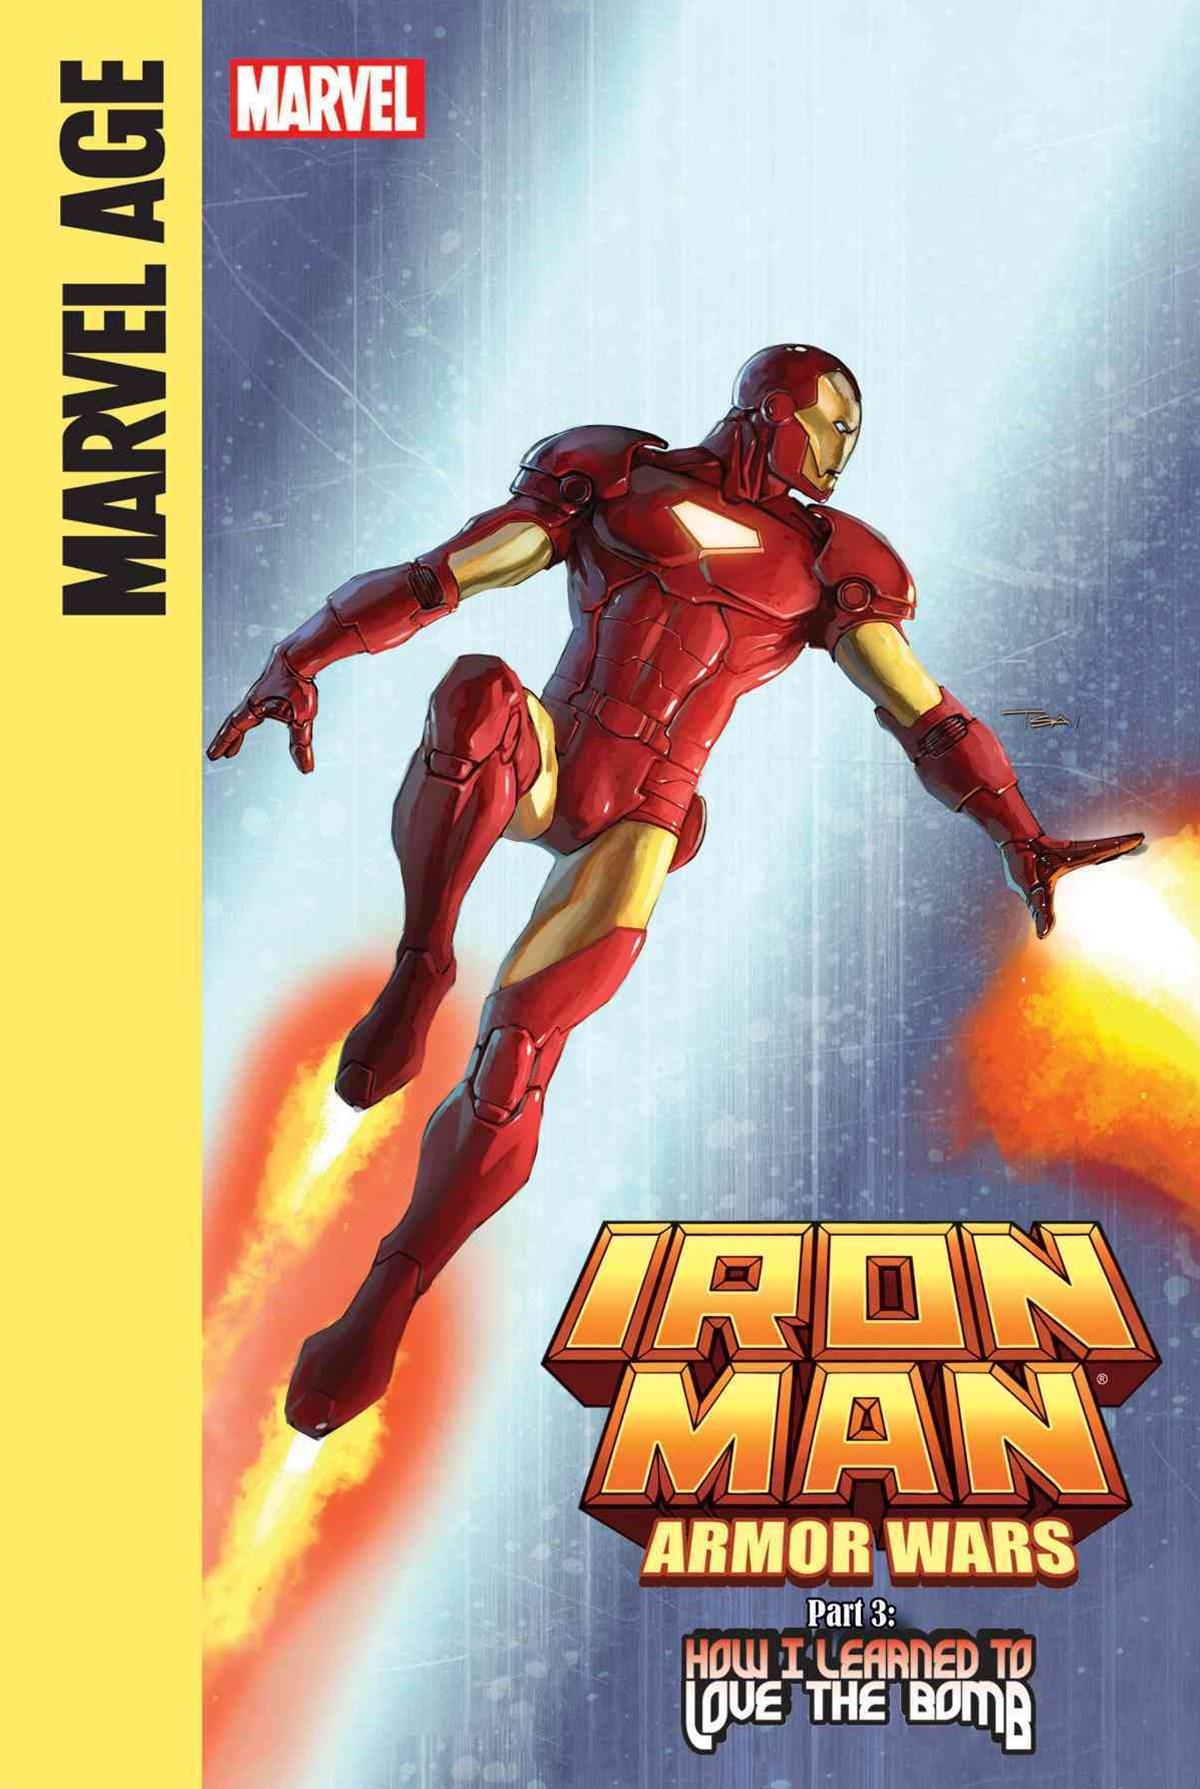 Iron Man and the Armor Wars Part 3